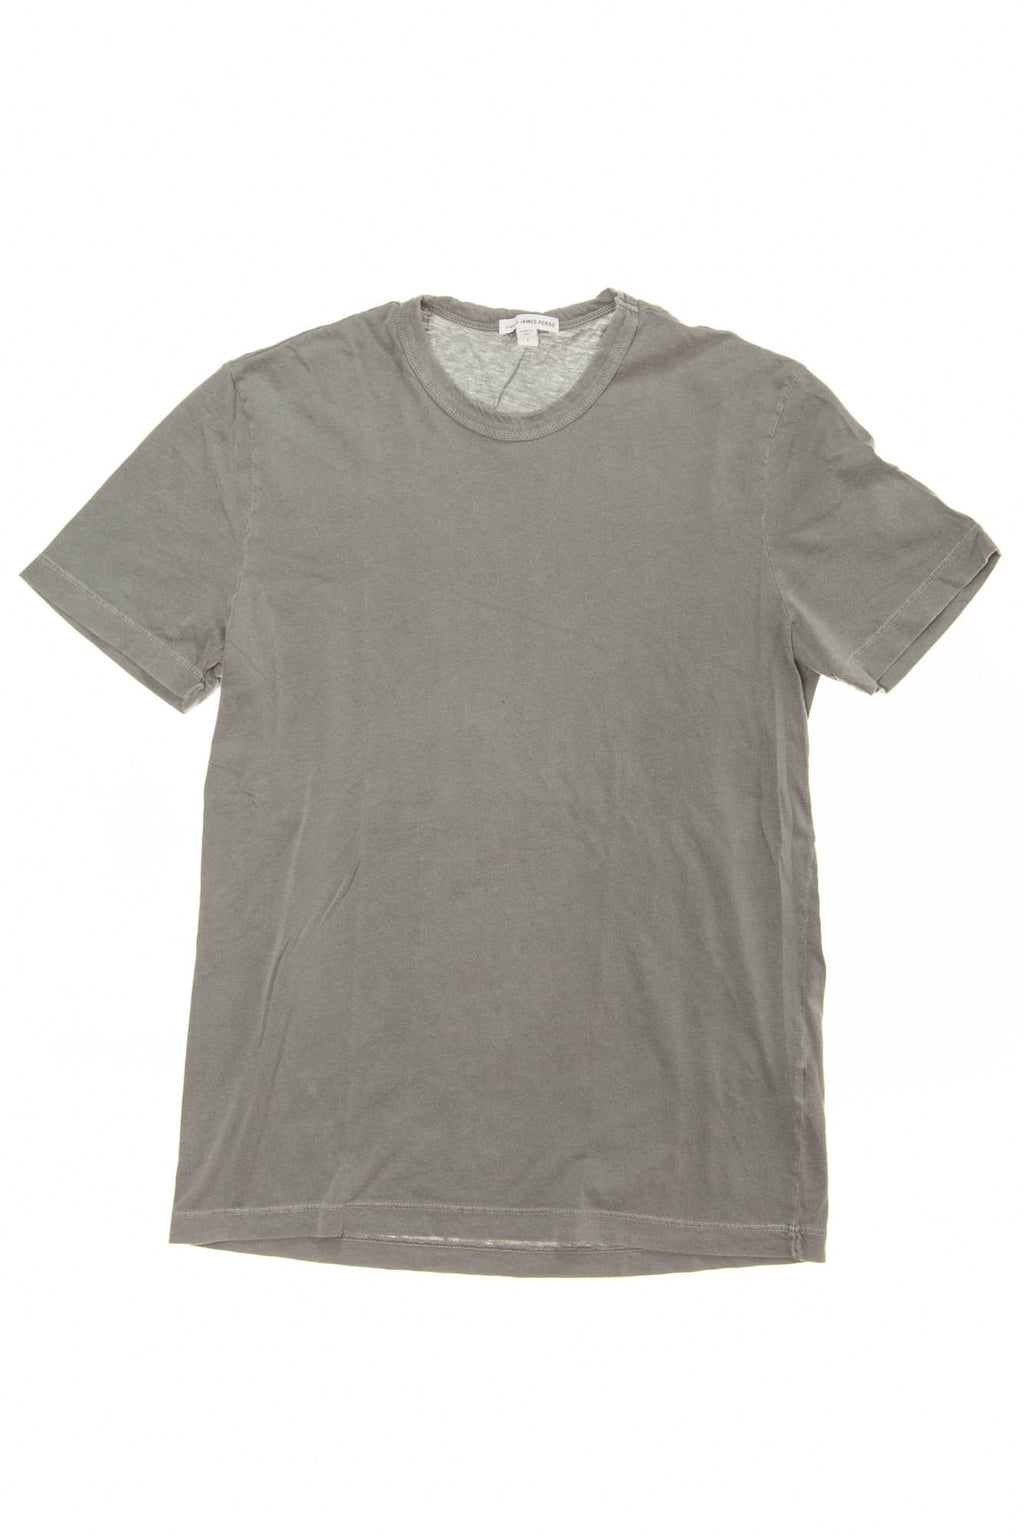 James Perse - Light Gray Short Sleeve T Shirt - 1